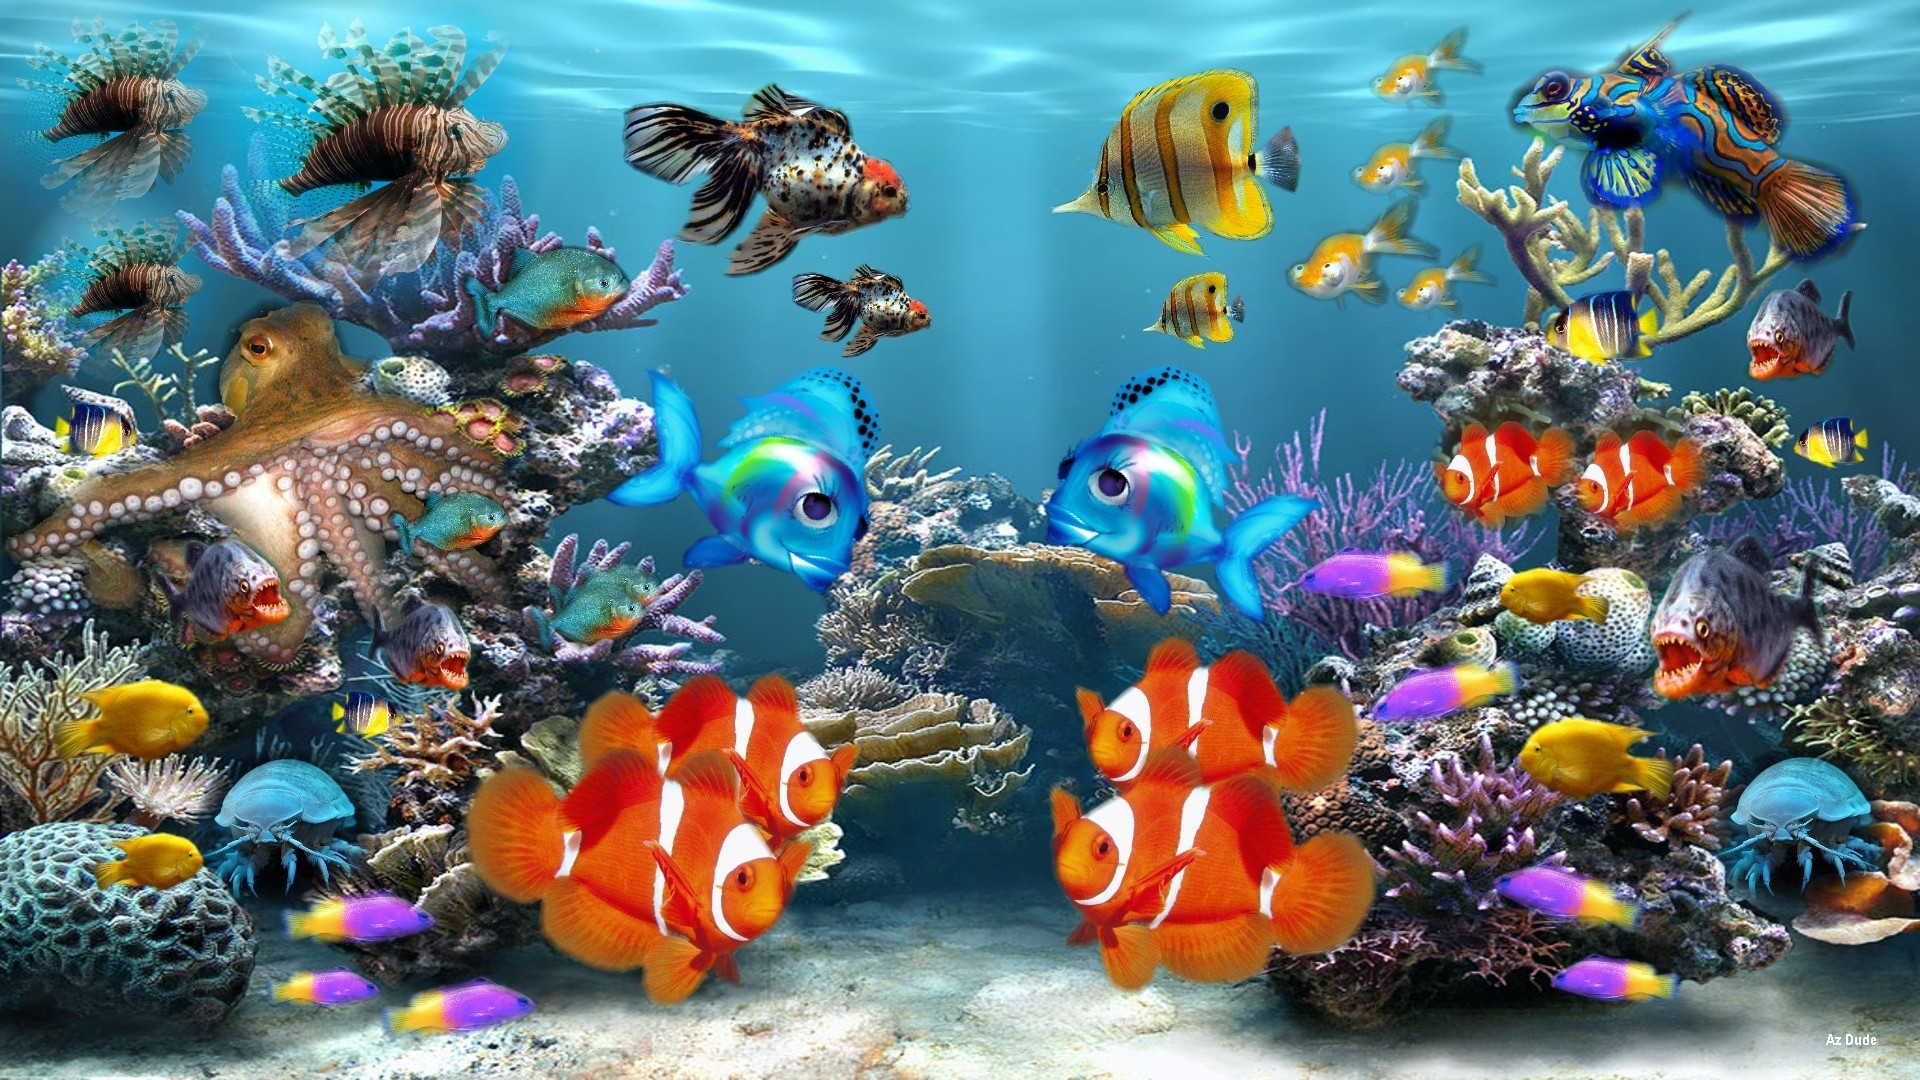 Best 3d Moving Wallpapers For Desktop Aquarium Background 183 ① Download Free Wallpapers For